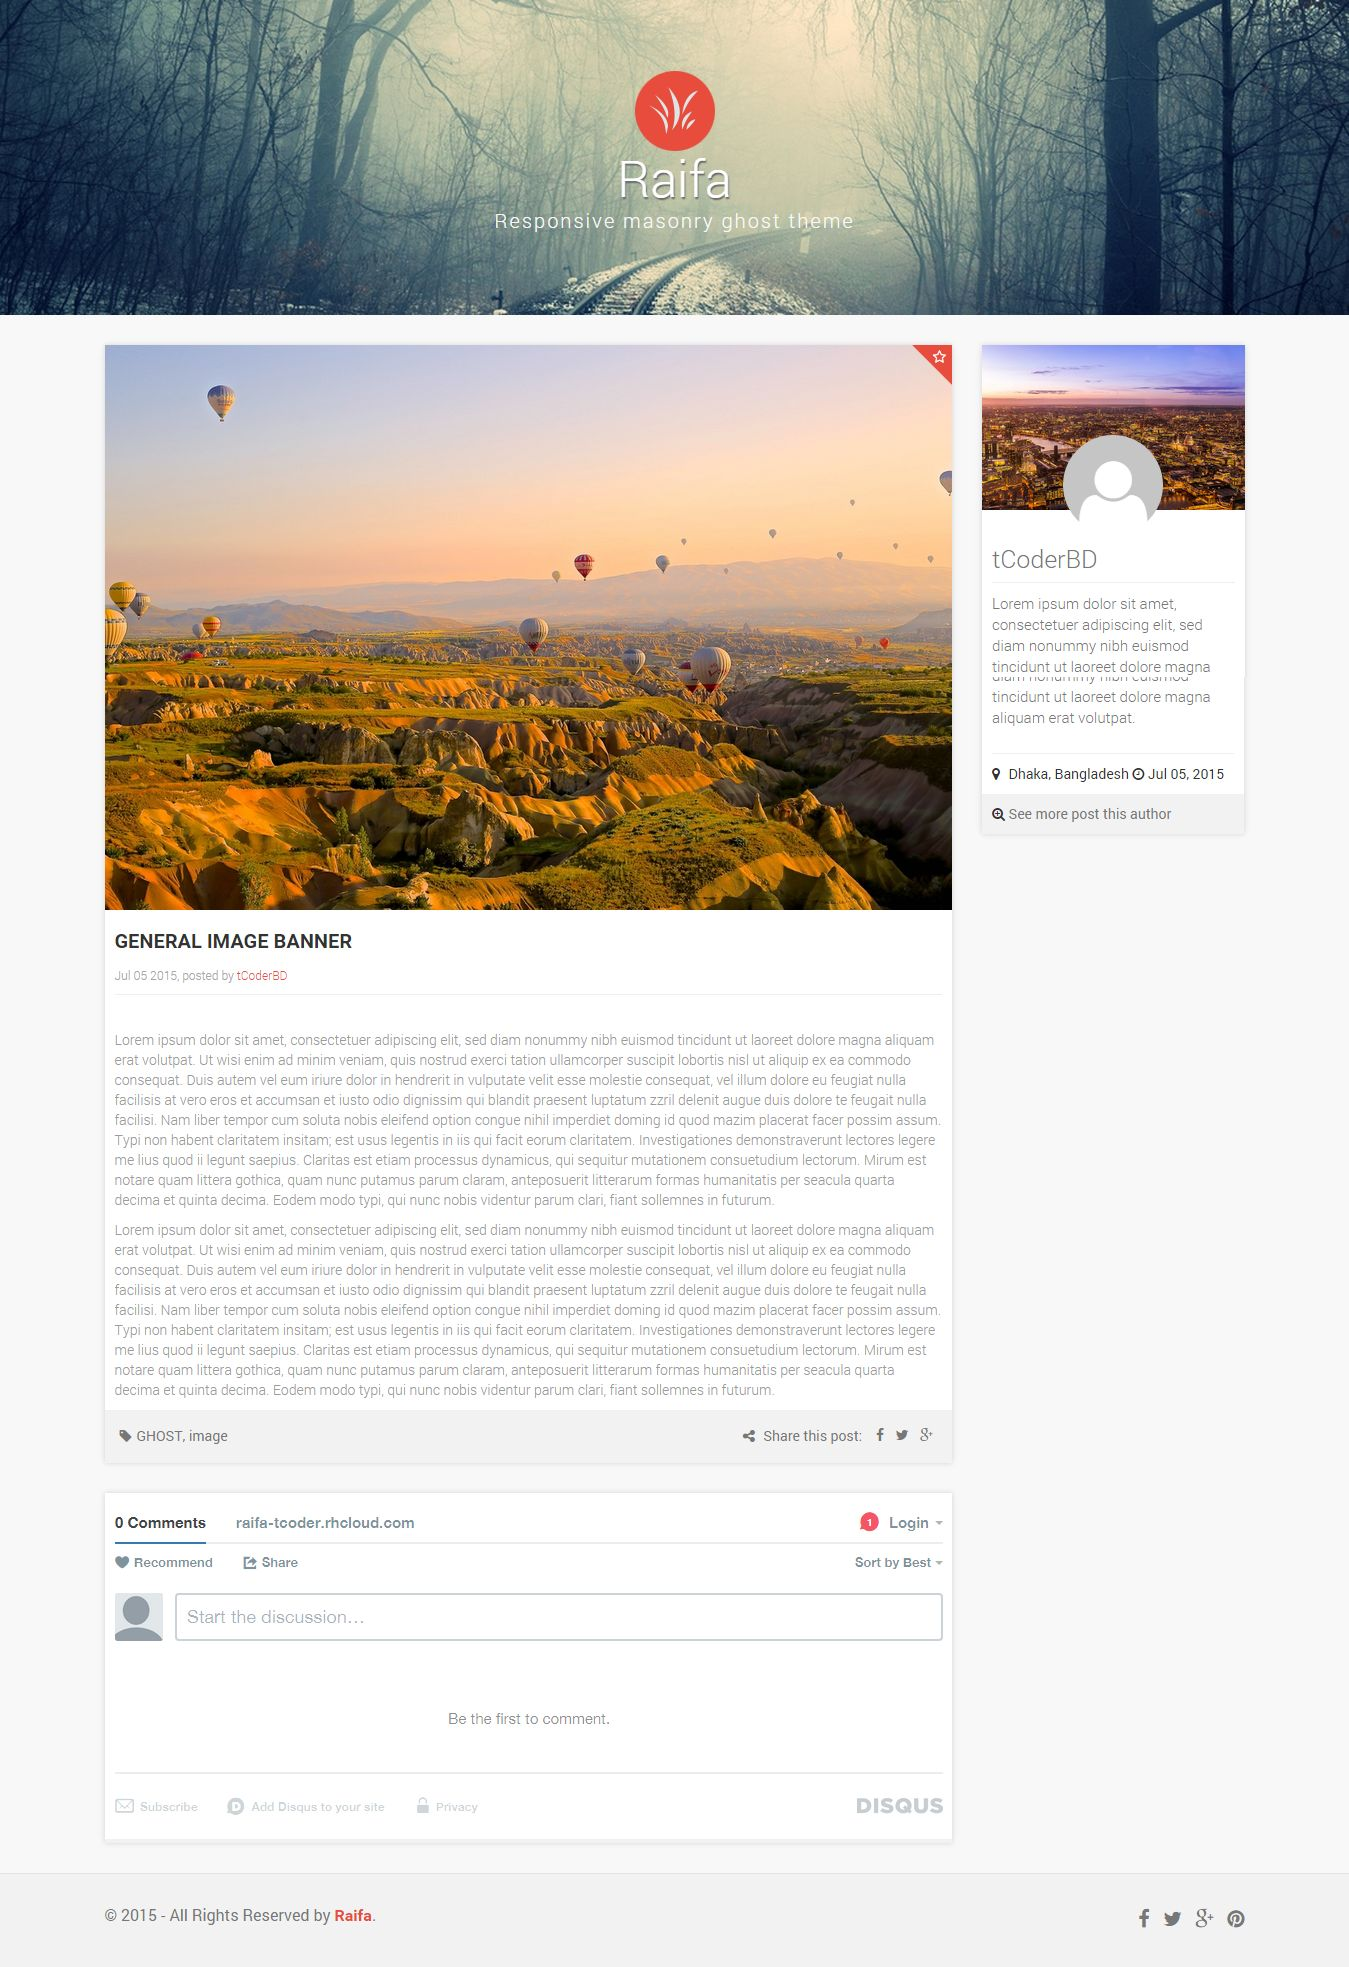 Raifa - Responsive Masonary Ghost Theme Screenshot 3